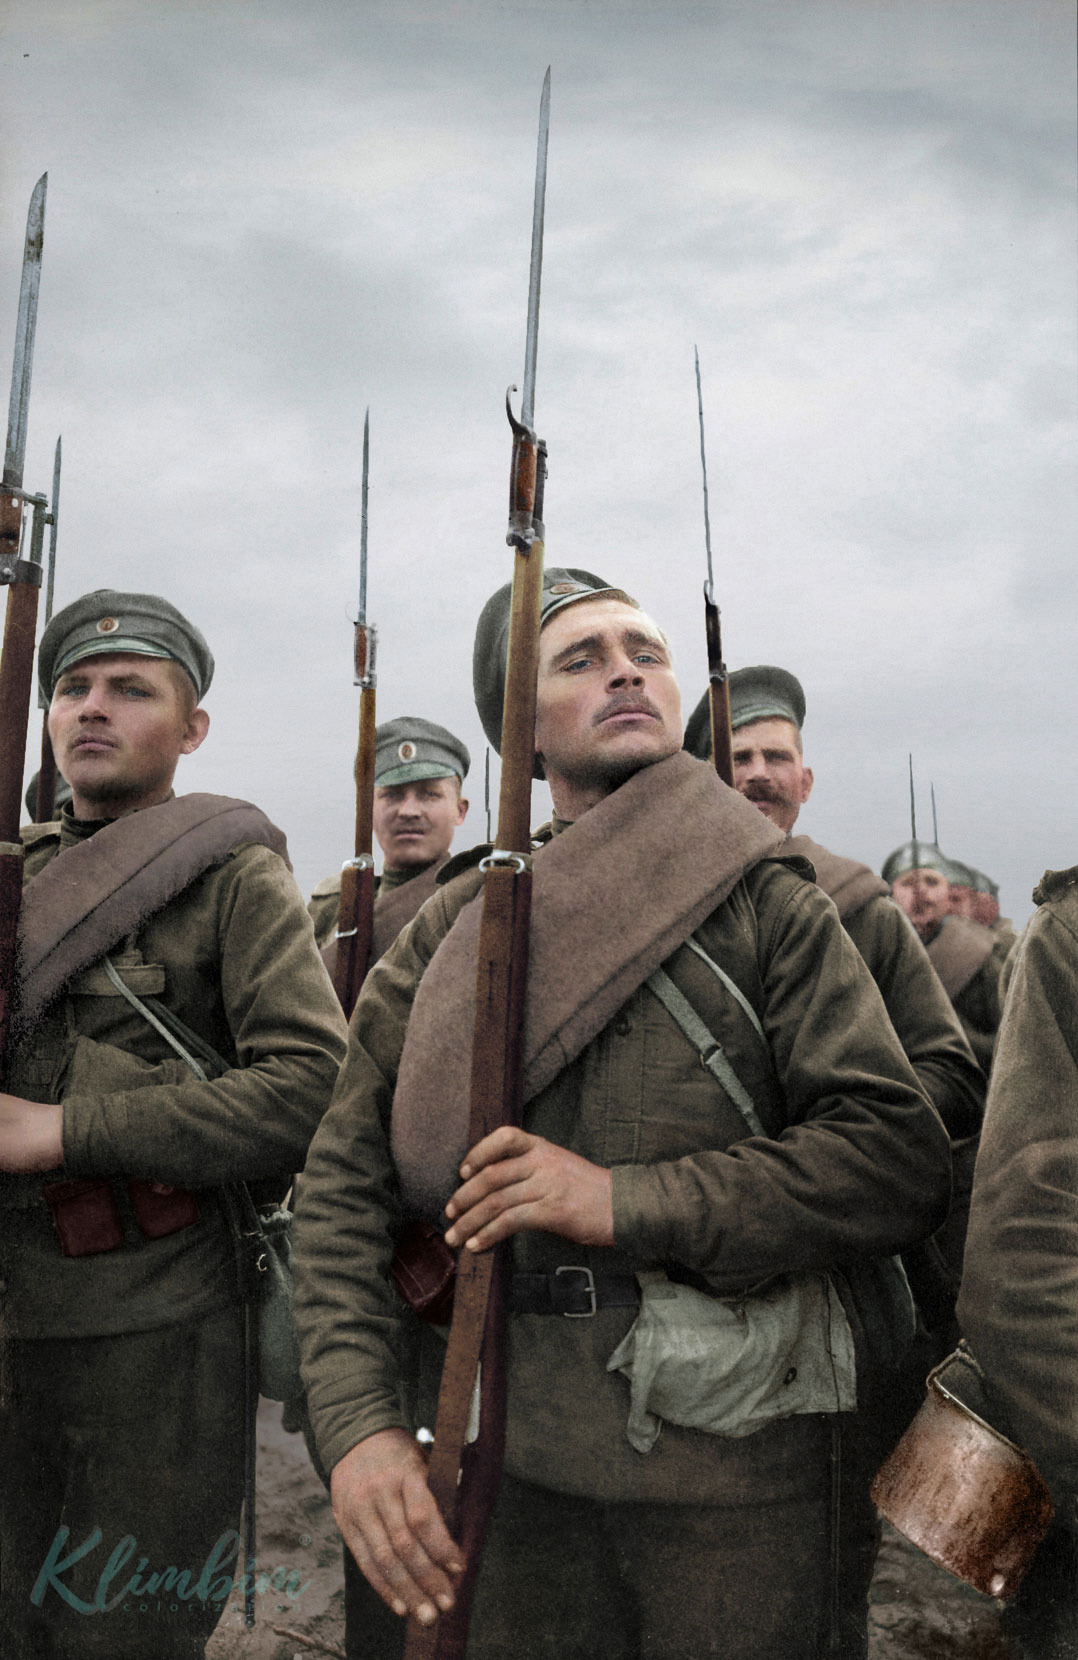 Captivating Colorized Portraits Of Russian Fighters In